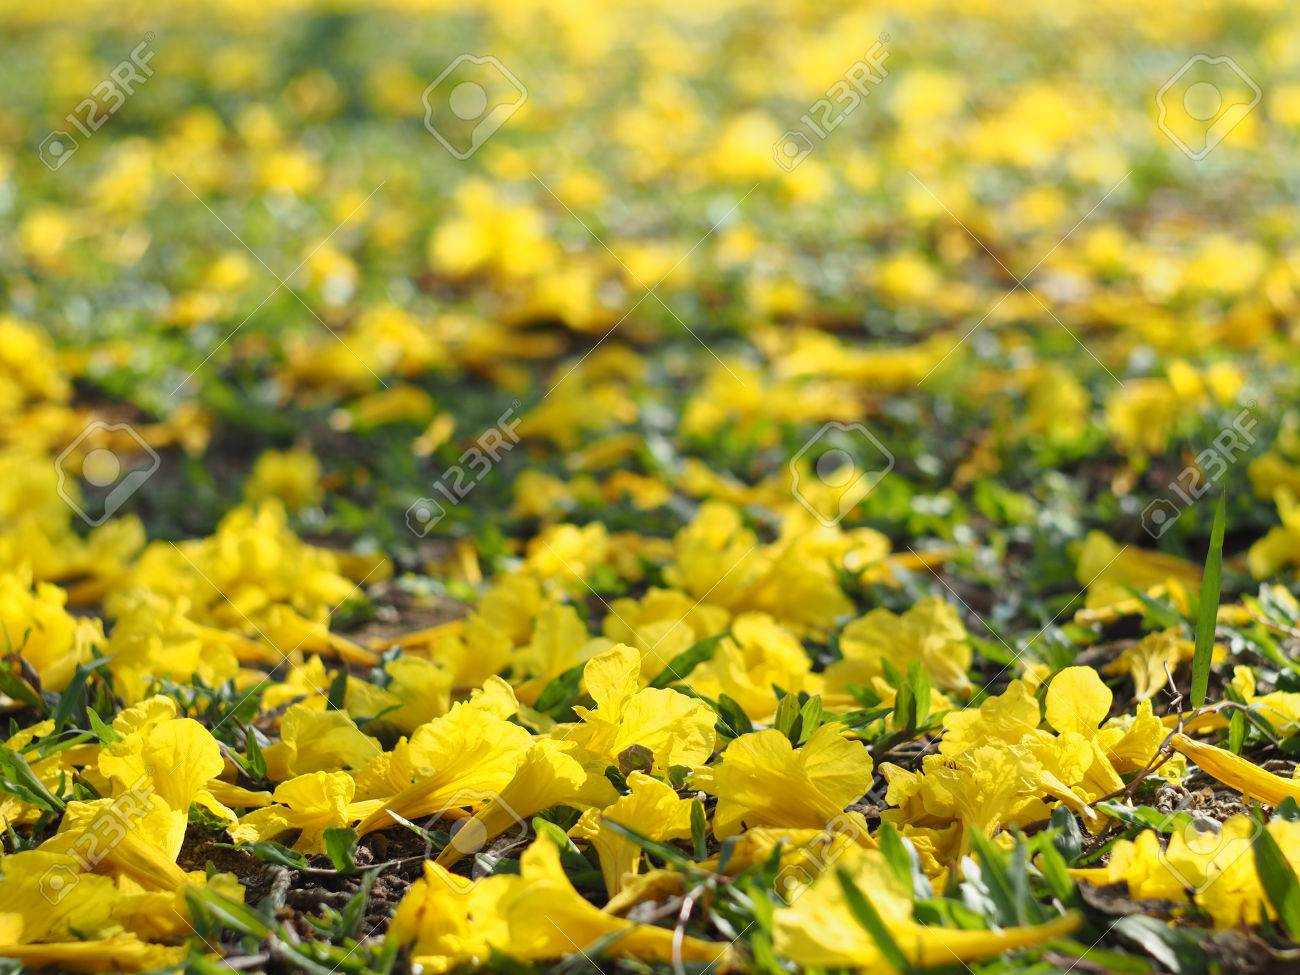 Close up yellow tabebuia rosea flowers fall on grass ground stock close up yellow tabebuia rosea flowers fall on grass ground stock photo 75864084 mightylinksfo